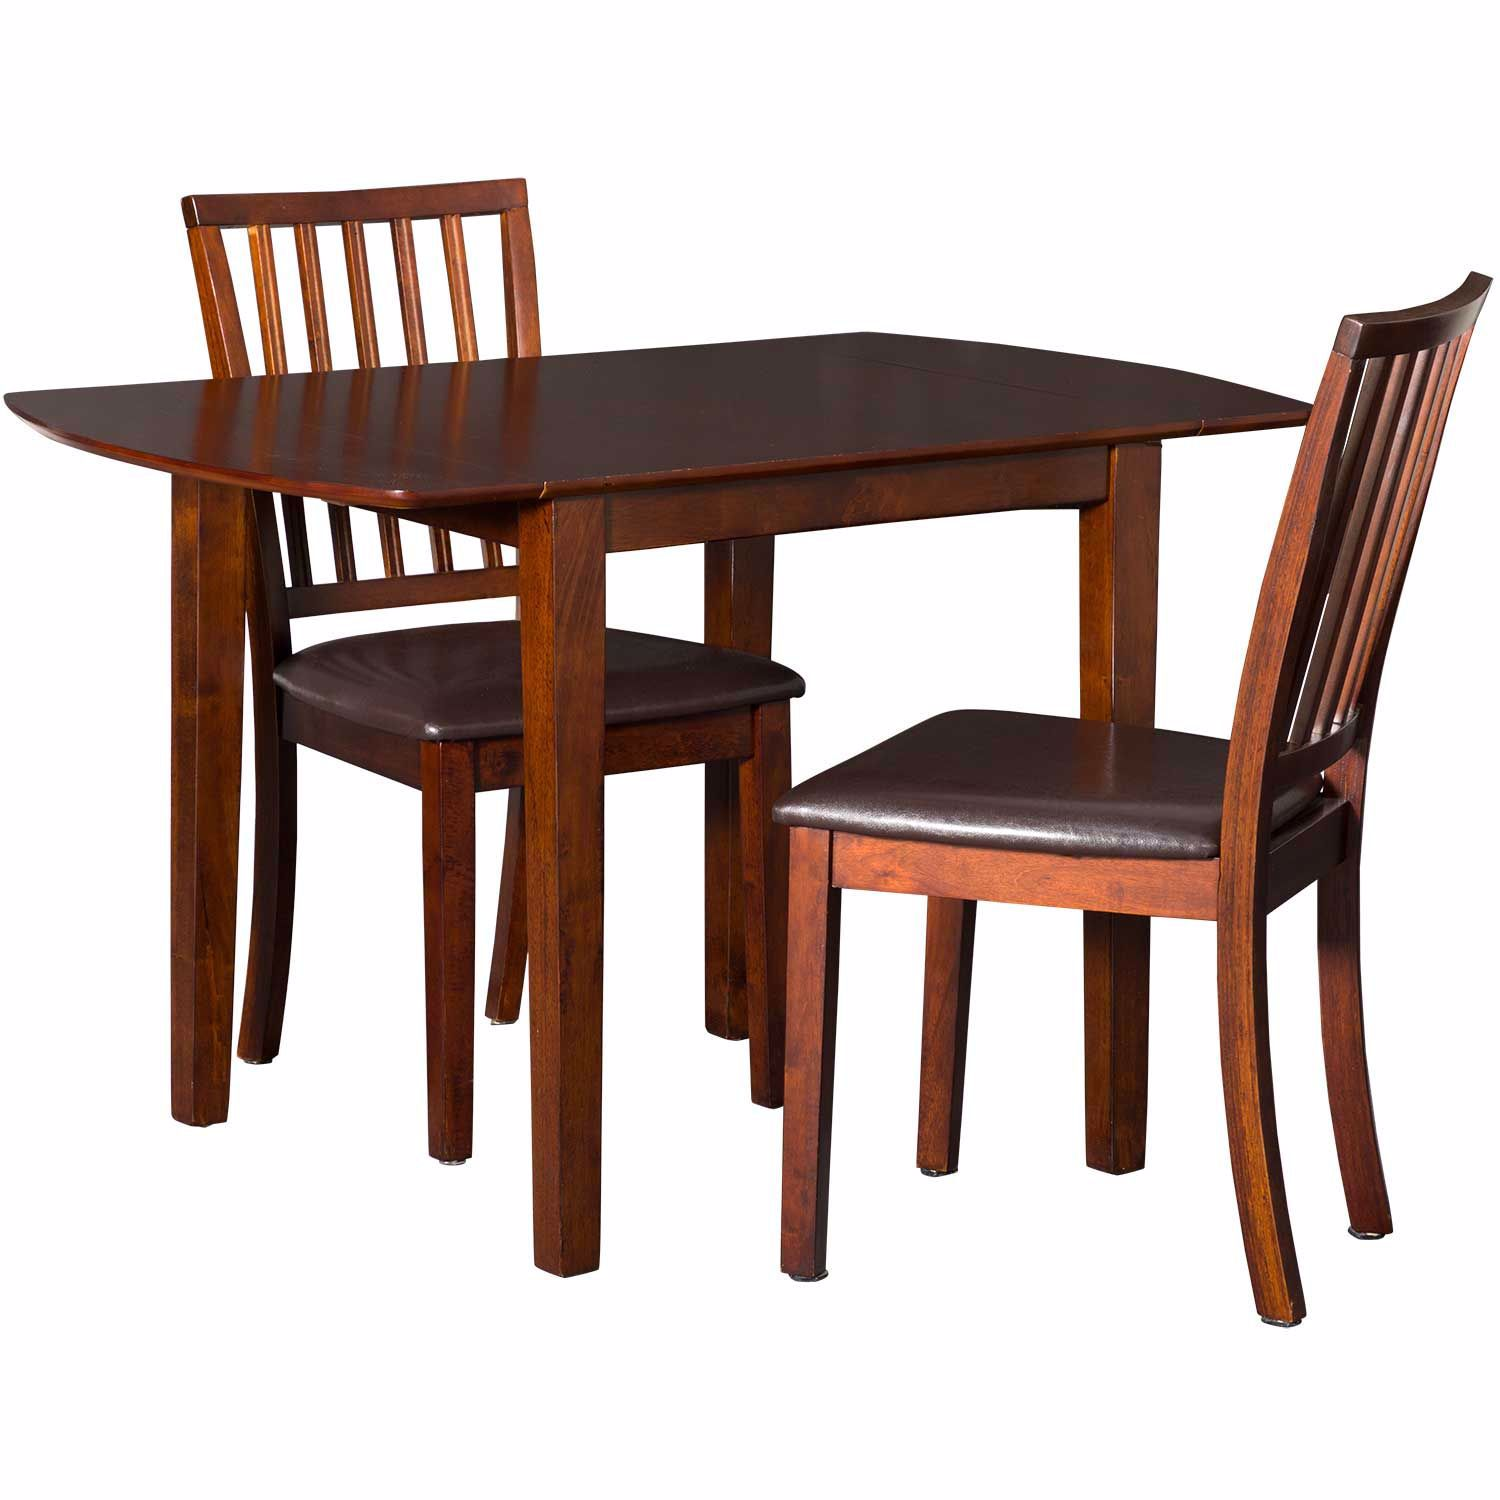 Picture of East Power Rectangular Table 3 Piece Set